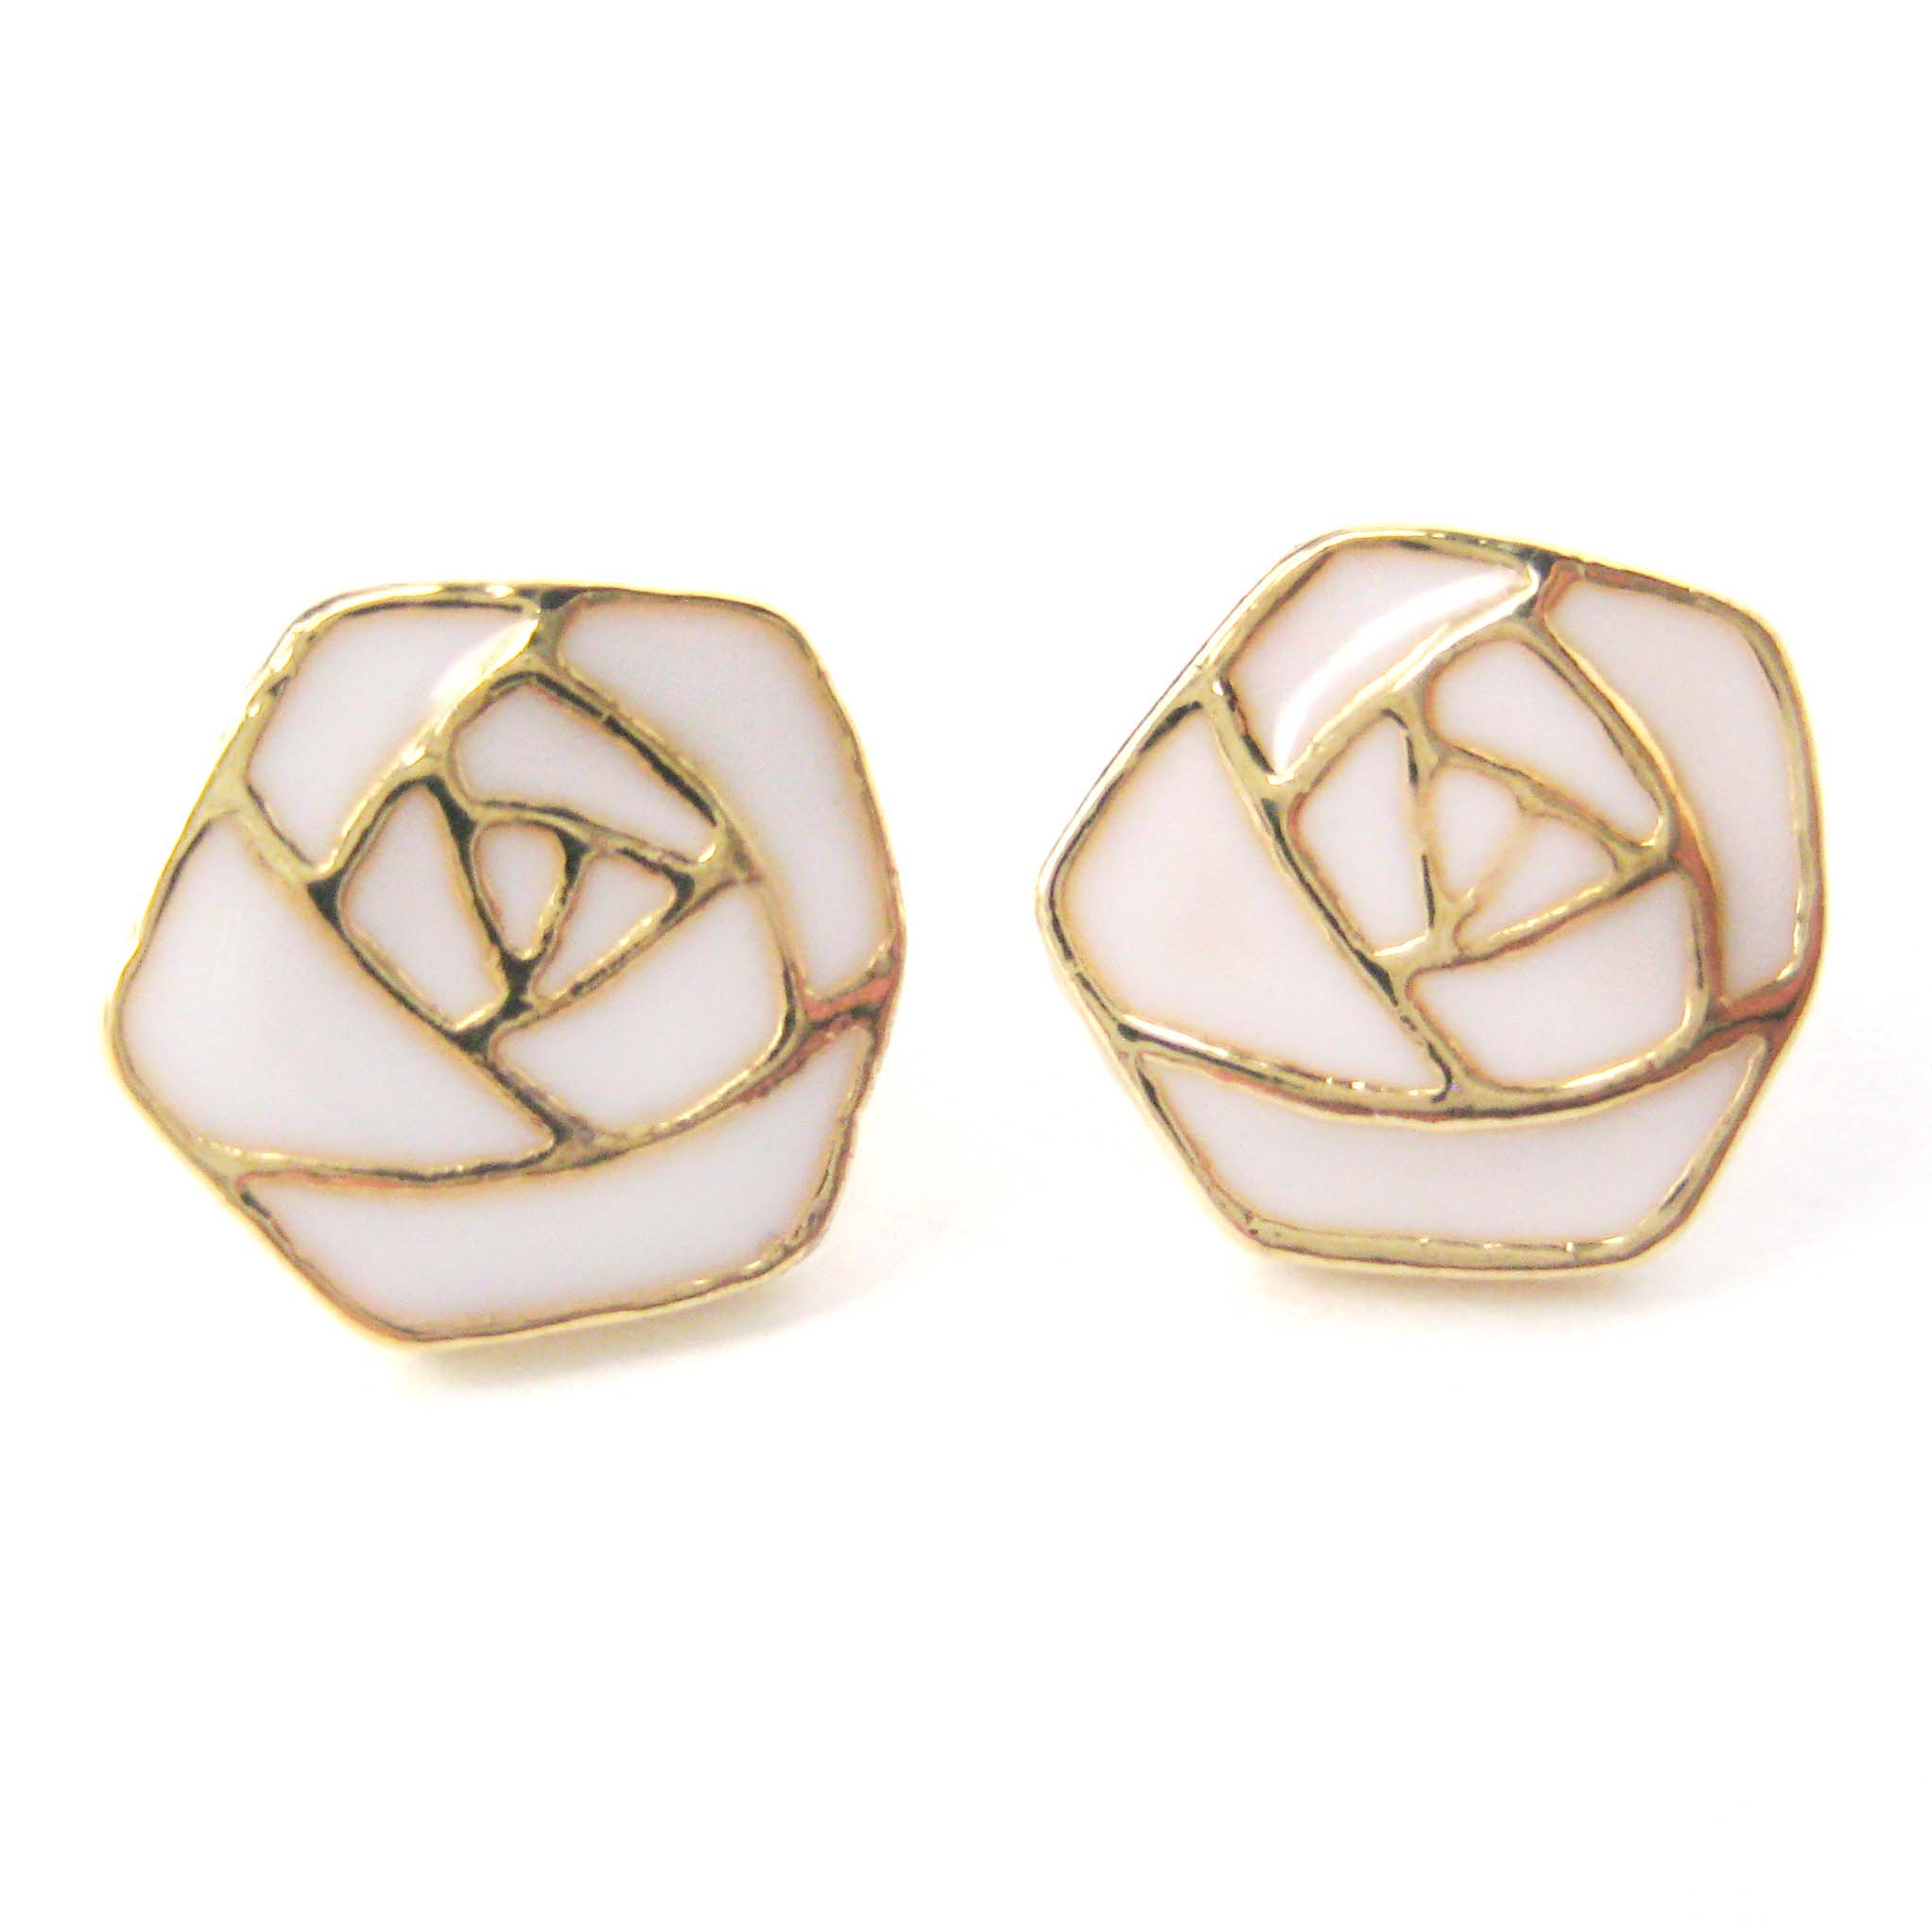 gg gucci white earrings jewellery running stud diamond gold